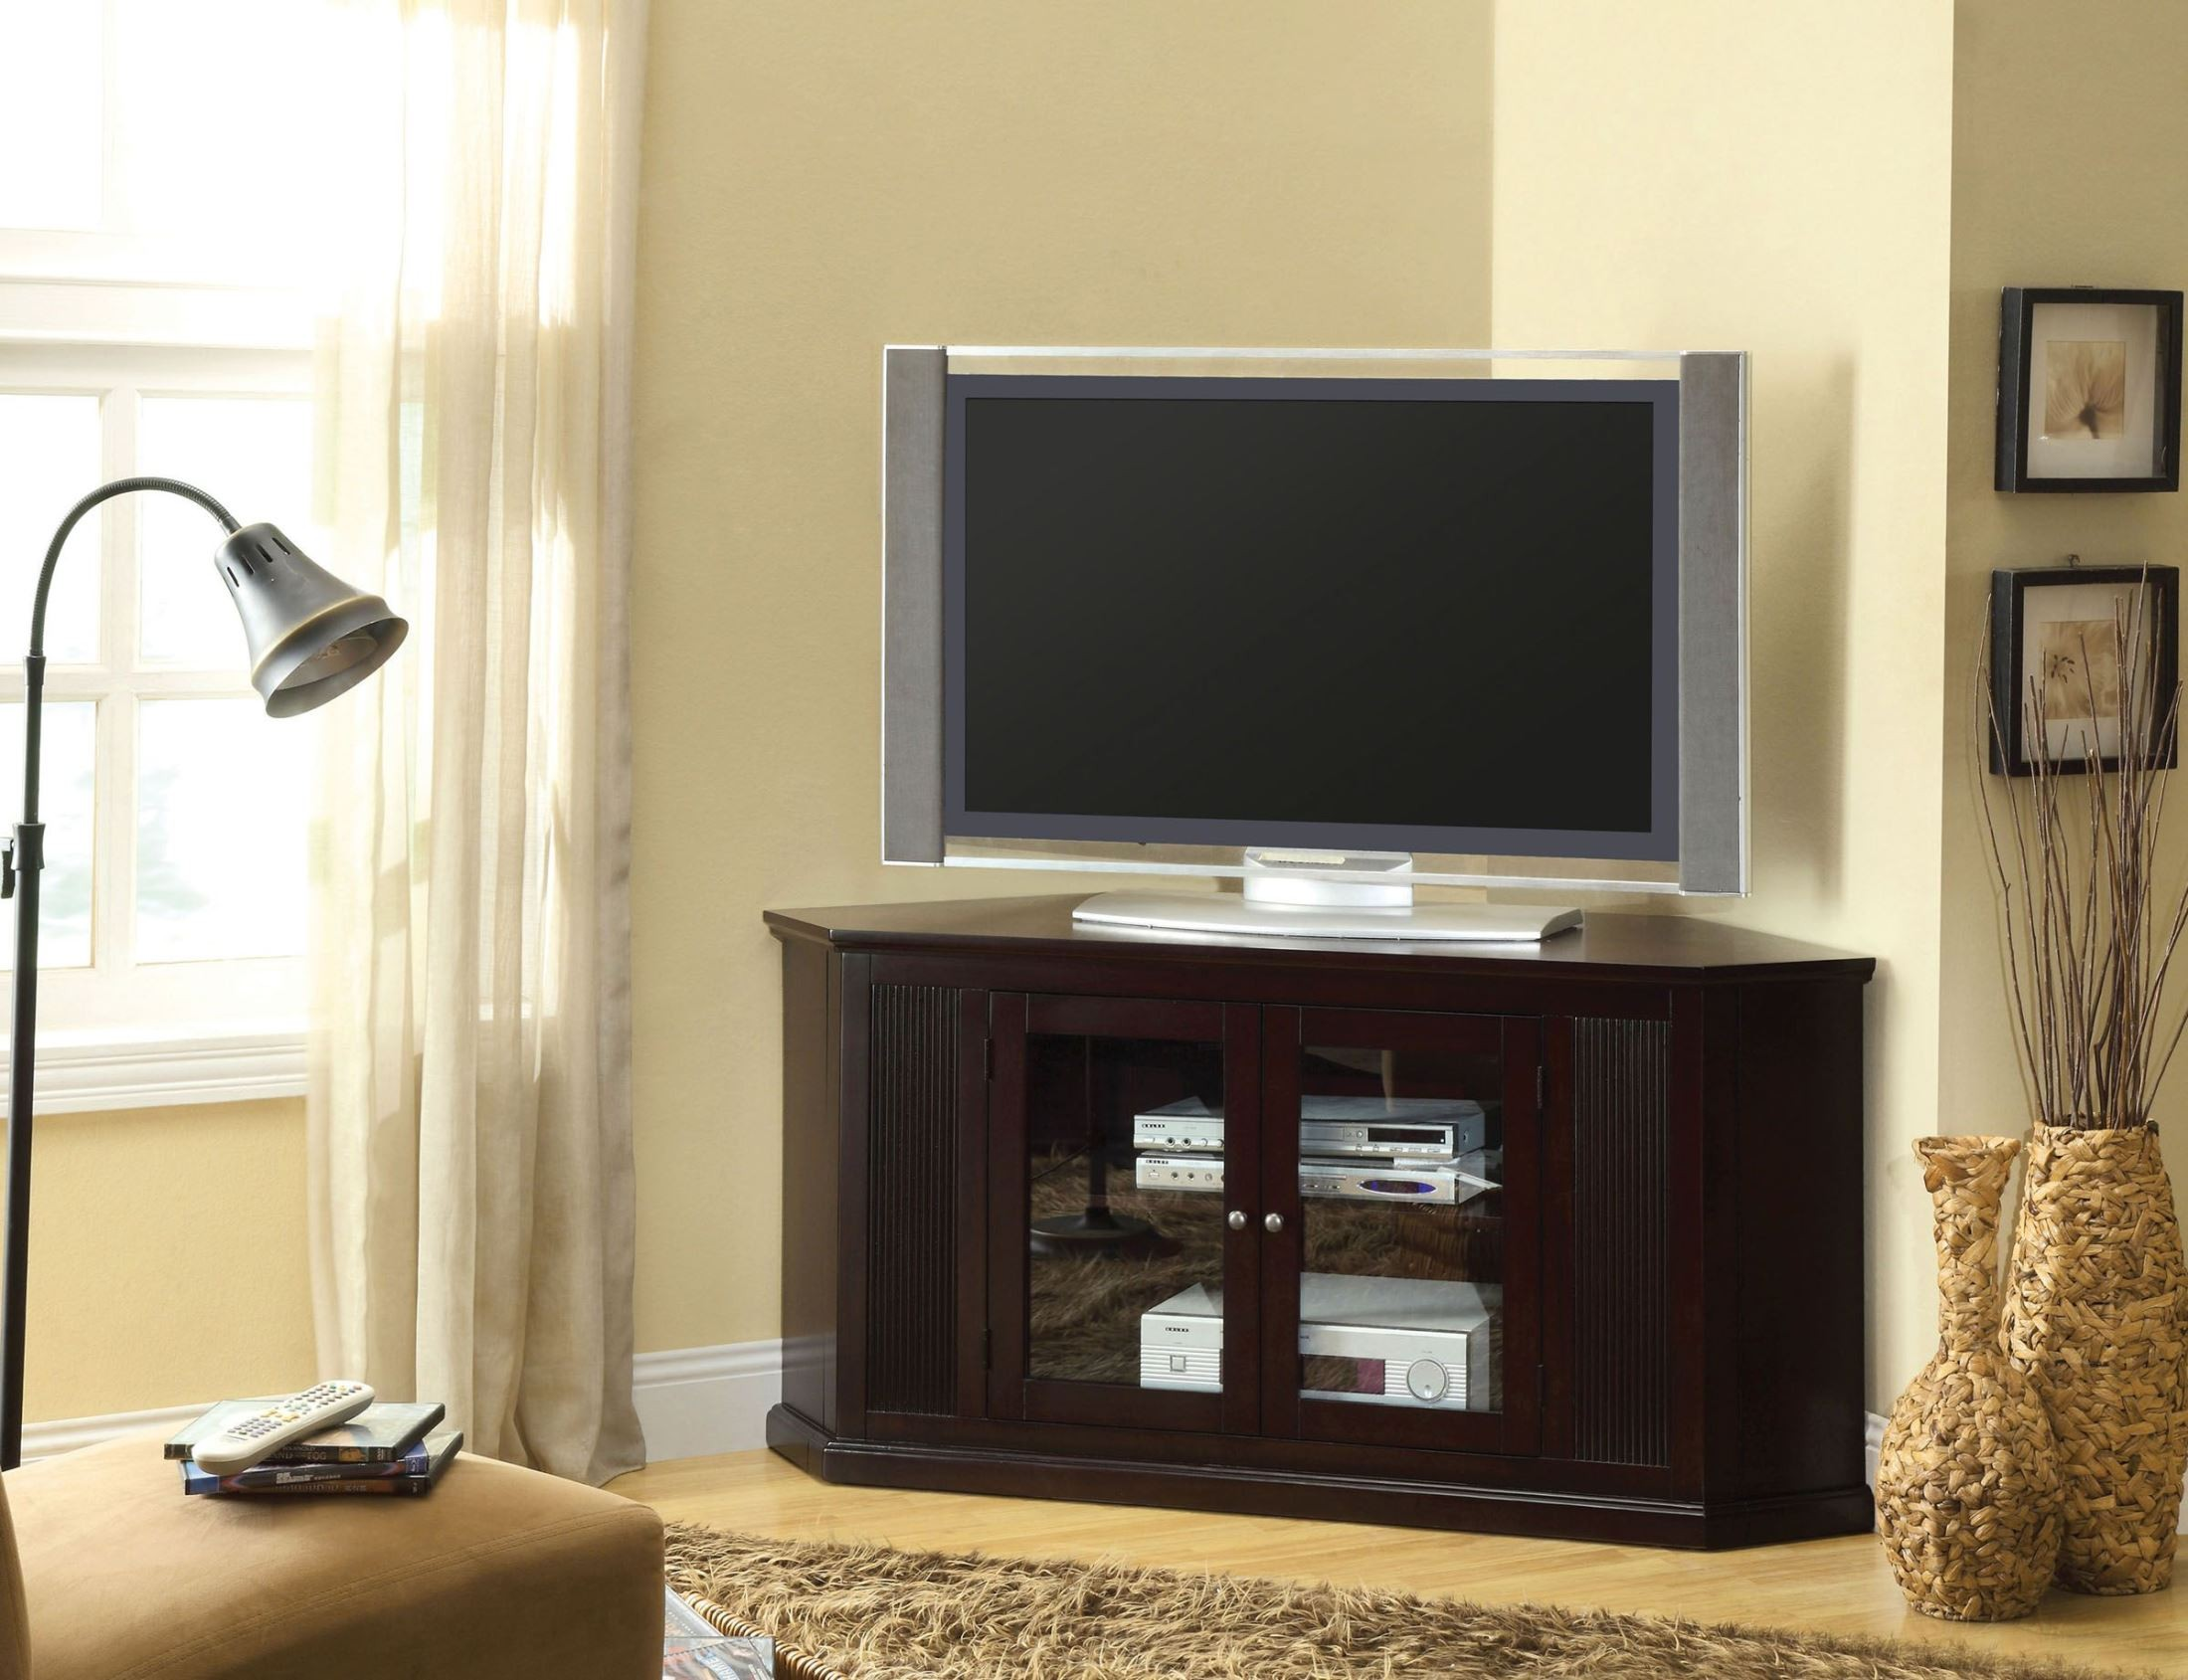 rockwell 60 tv console from furniture of america cm5352. Black Bedroom Furniture Sets. Home Design Ideas